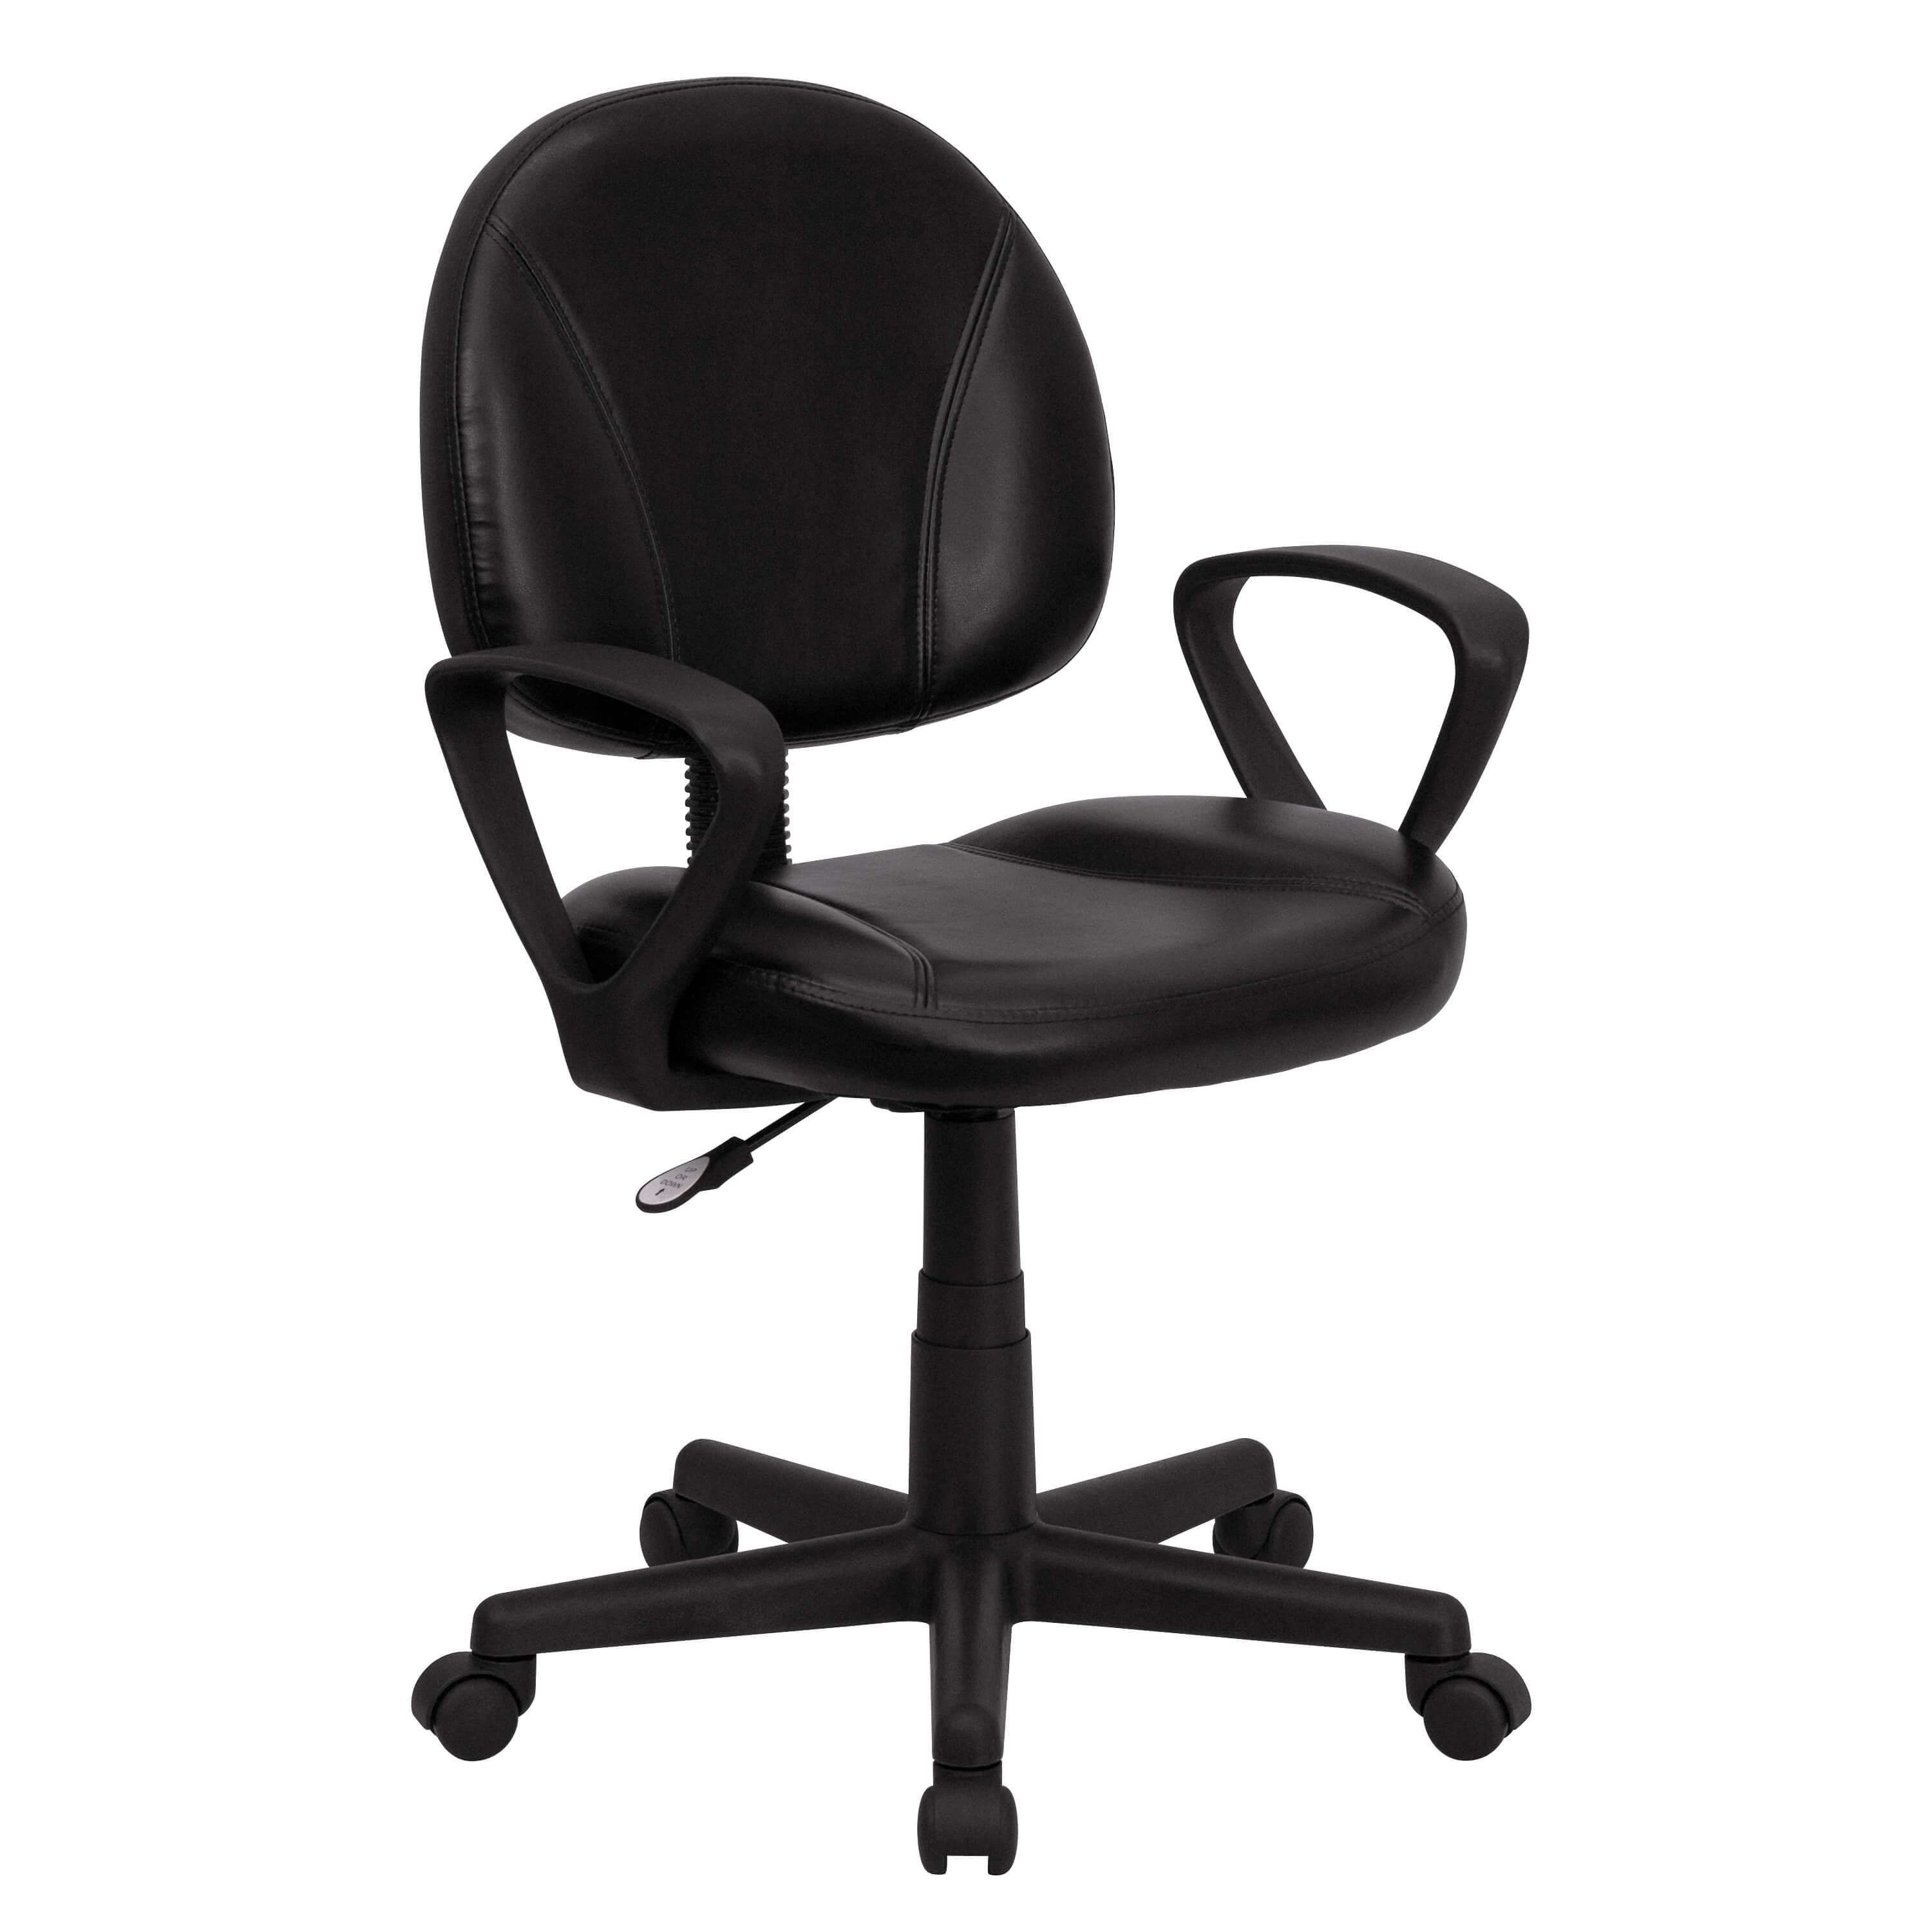 durable office chairs king furniture dining gleam computer desk